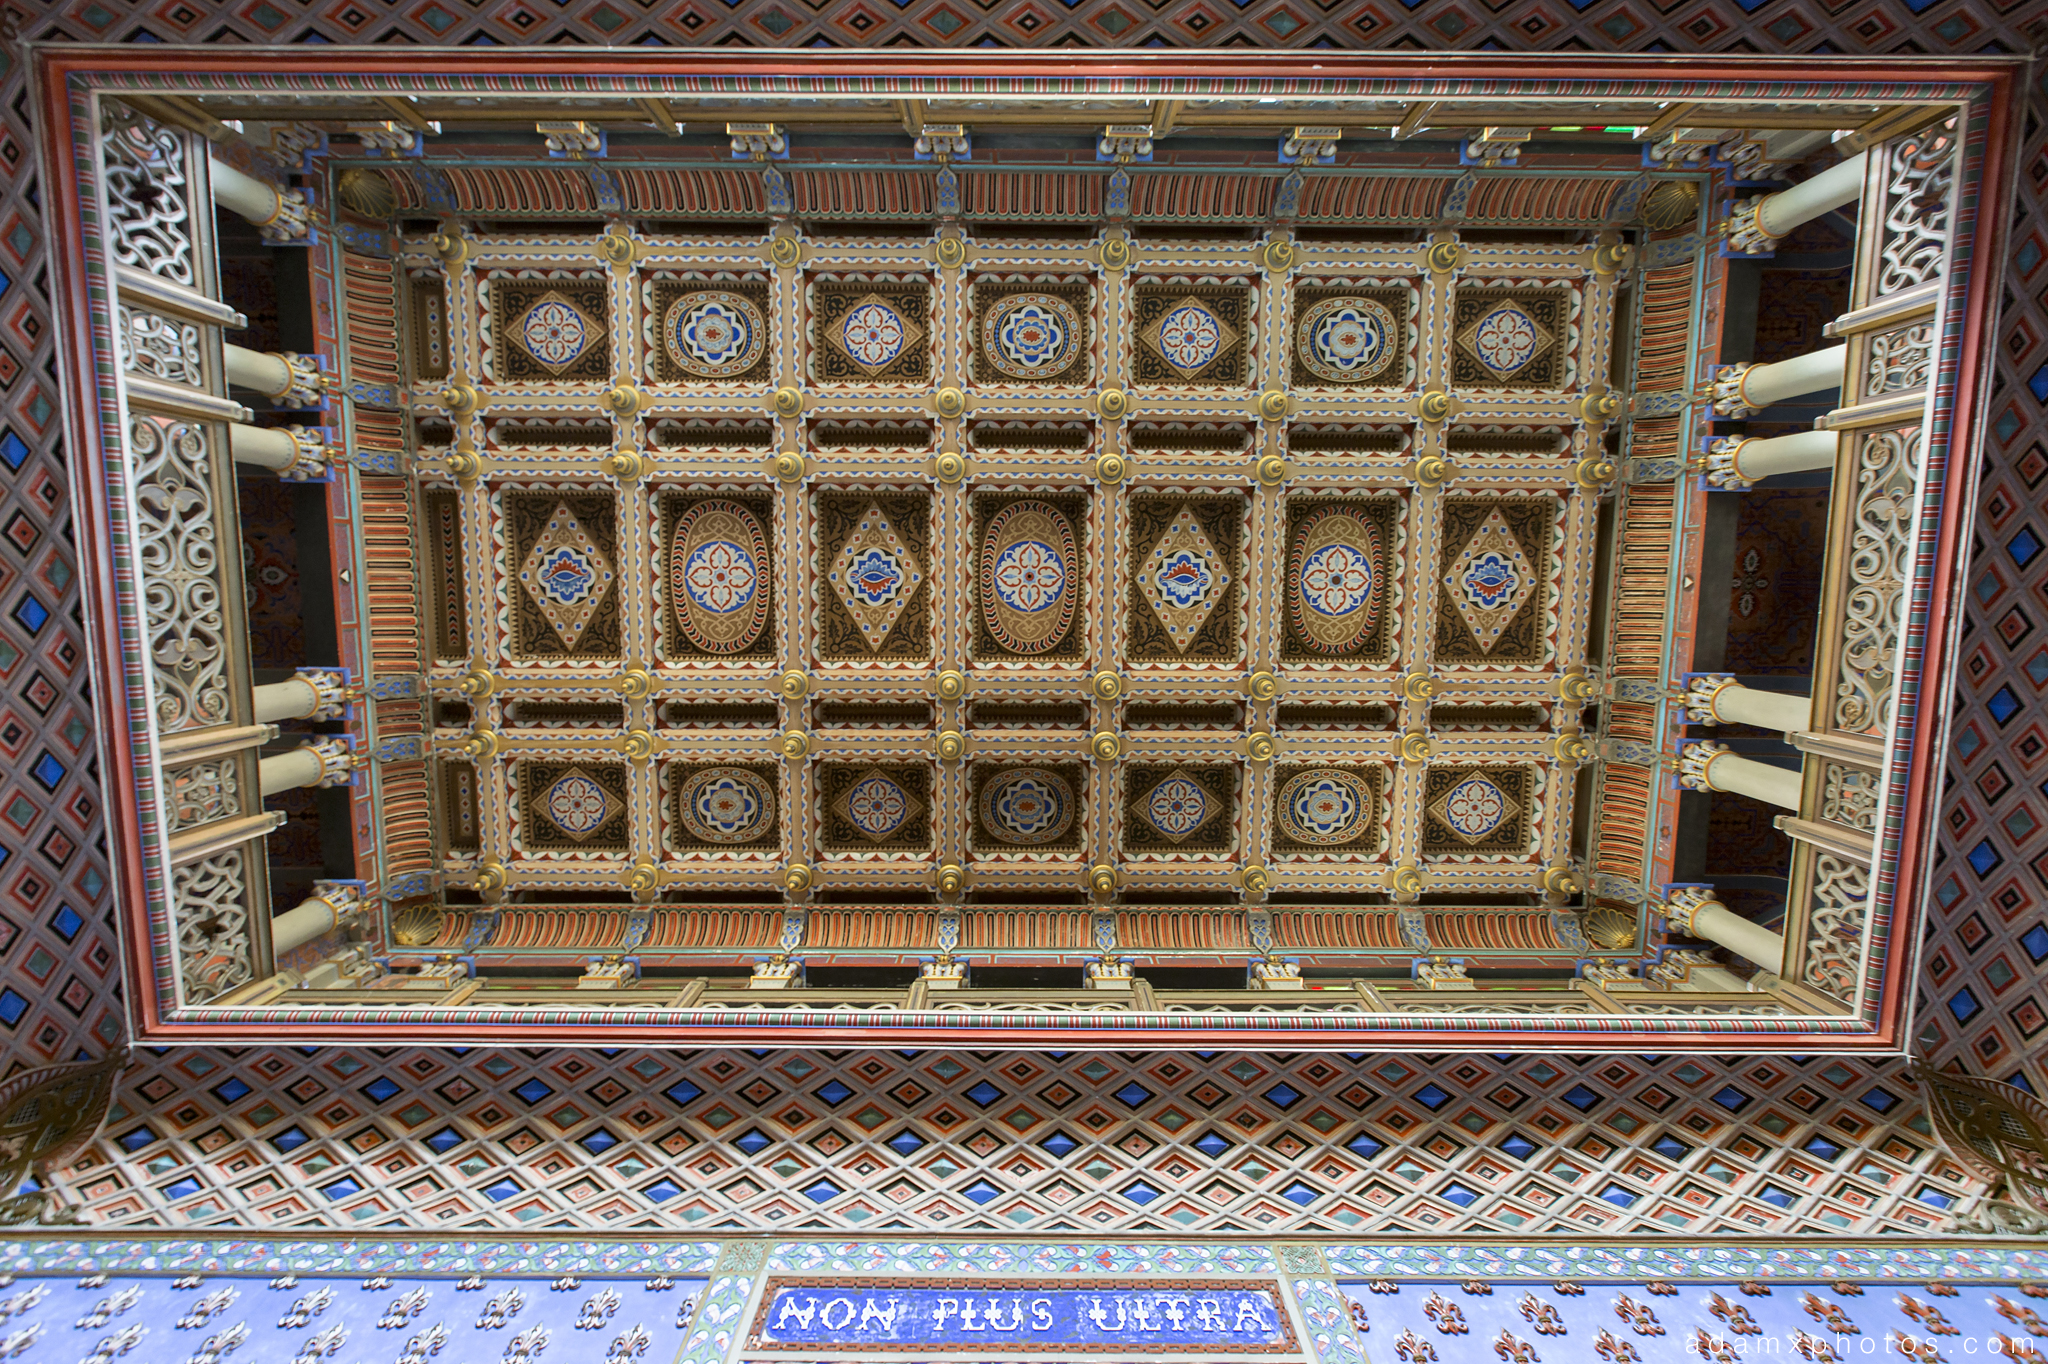 Ceiling Hall of Lilies Sala dei gigli Non Plus Ultra Fairytale Castle of Sammezzano Castello di Sammezzano Urbex Adam X Urban Exploration photo photos report decay detail UE abandoned Ornate Moorish tiling tiled derelict unused empty disused decay decayed decaying grimy grime